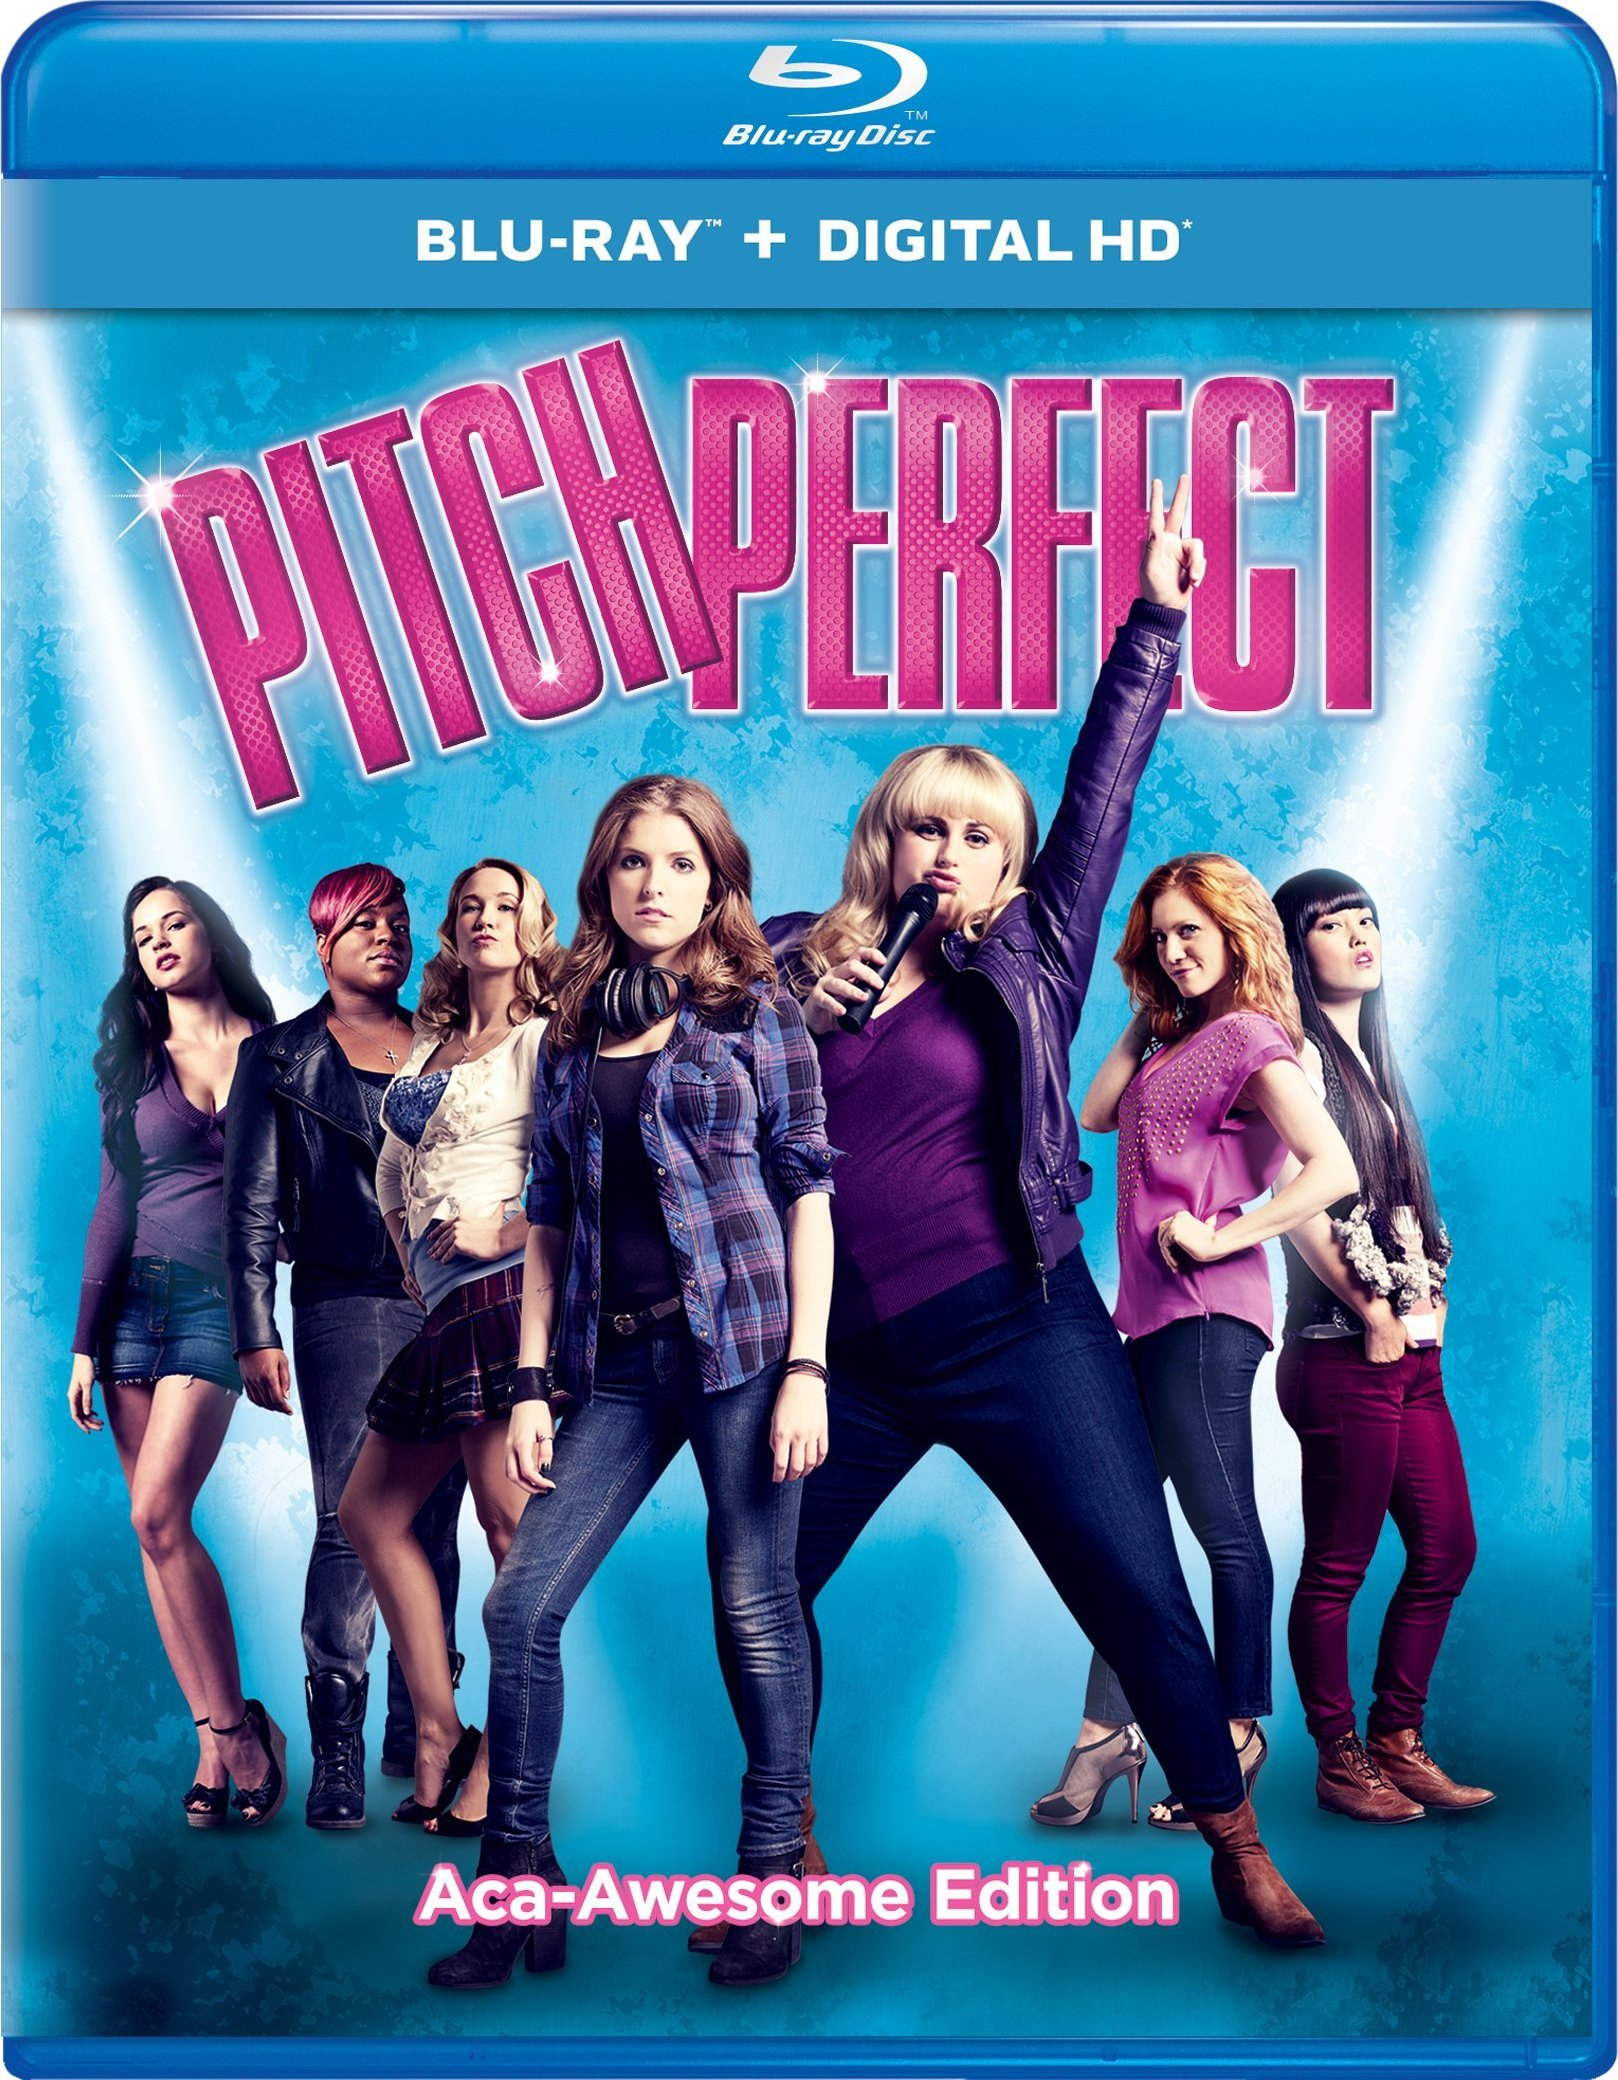 Pitch Perfect Aca Awesome Edition (Blu-ray + DVD + Digital HD UltraViolet Combo Pack With Bonus Blu-ray 3D)